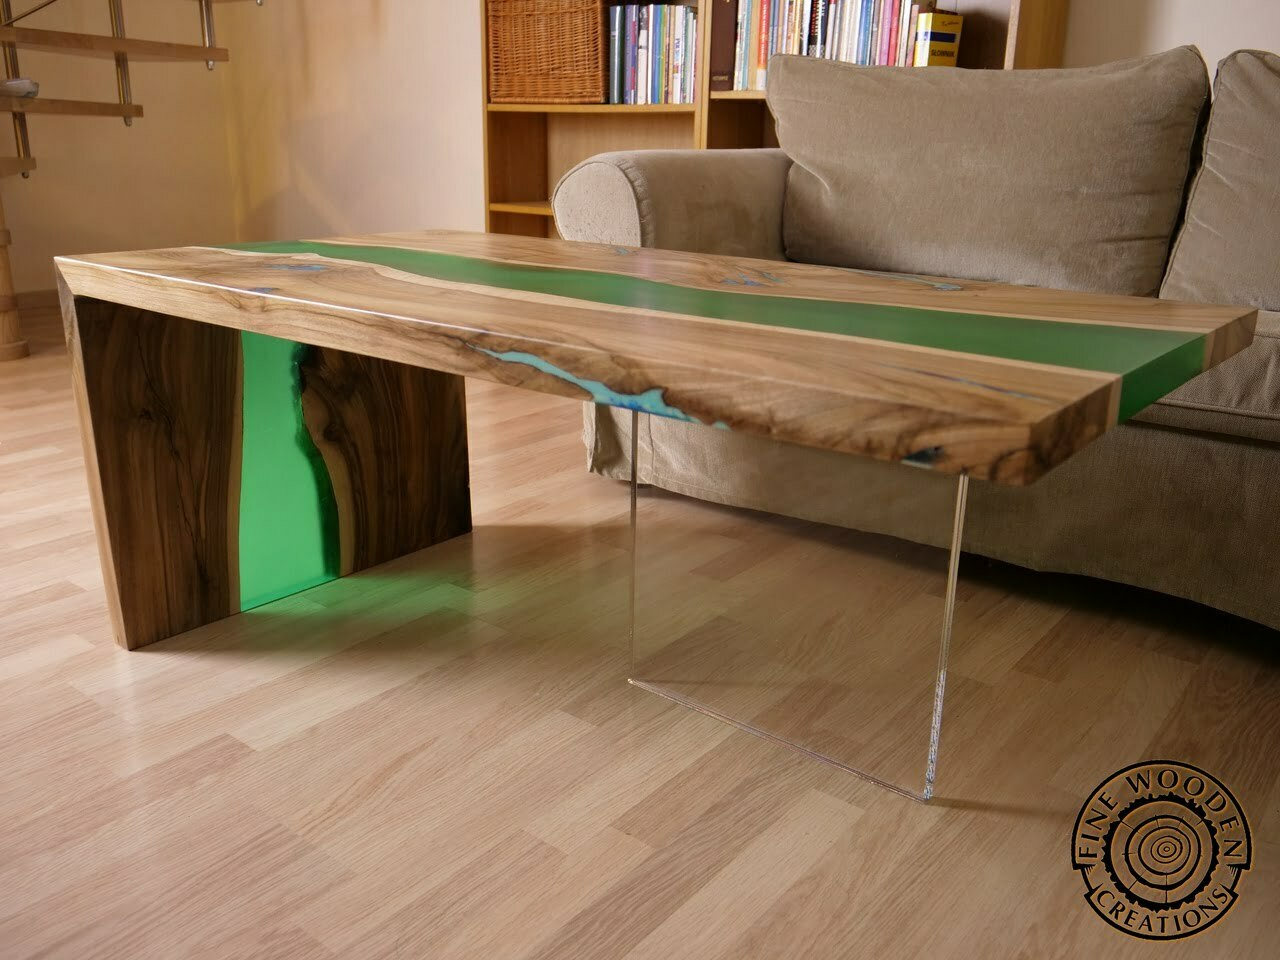 Live edge Green Waterfall river coffee table with  : image20 from finewoodencreations.com size 1280 x 960 jpeg 486kB